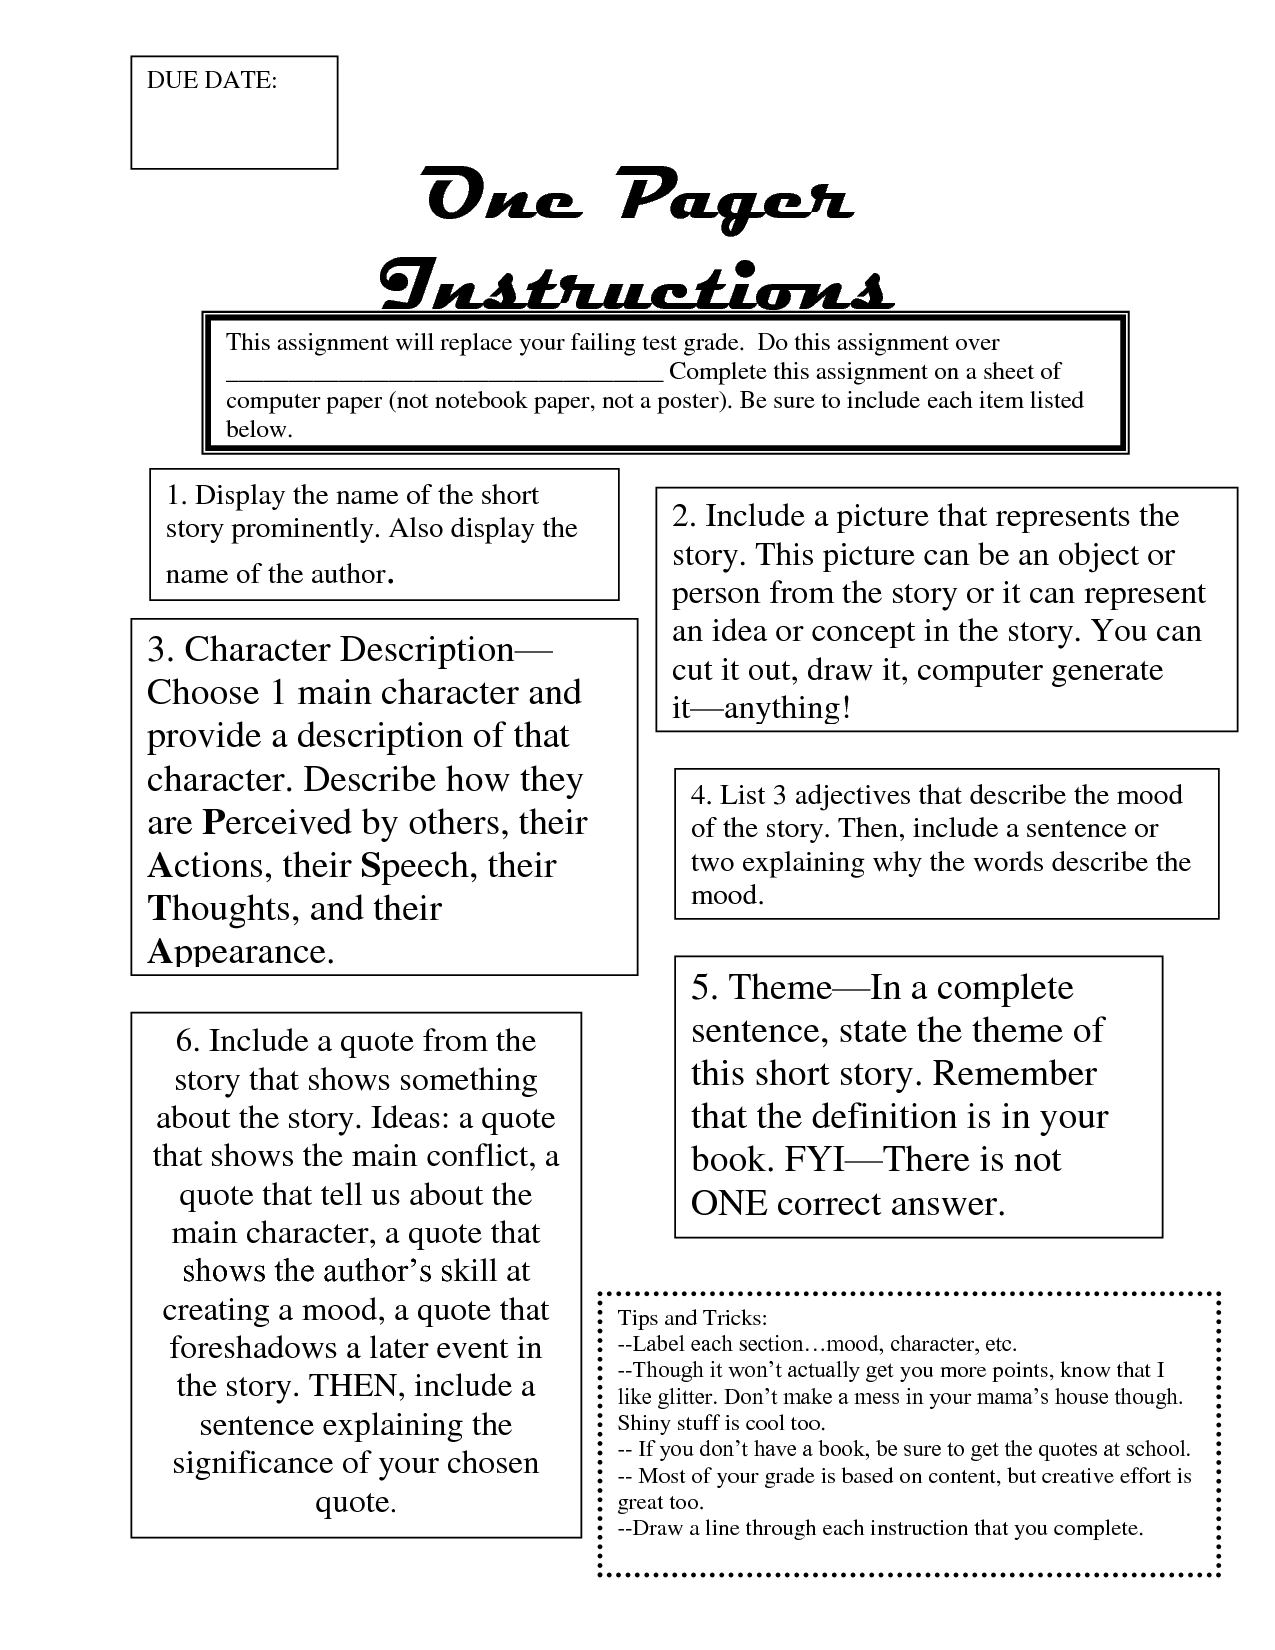 One Pager Example